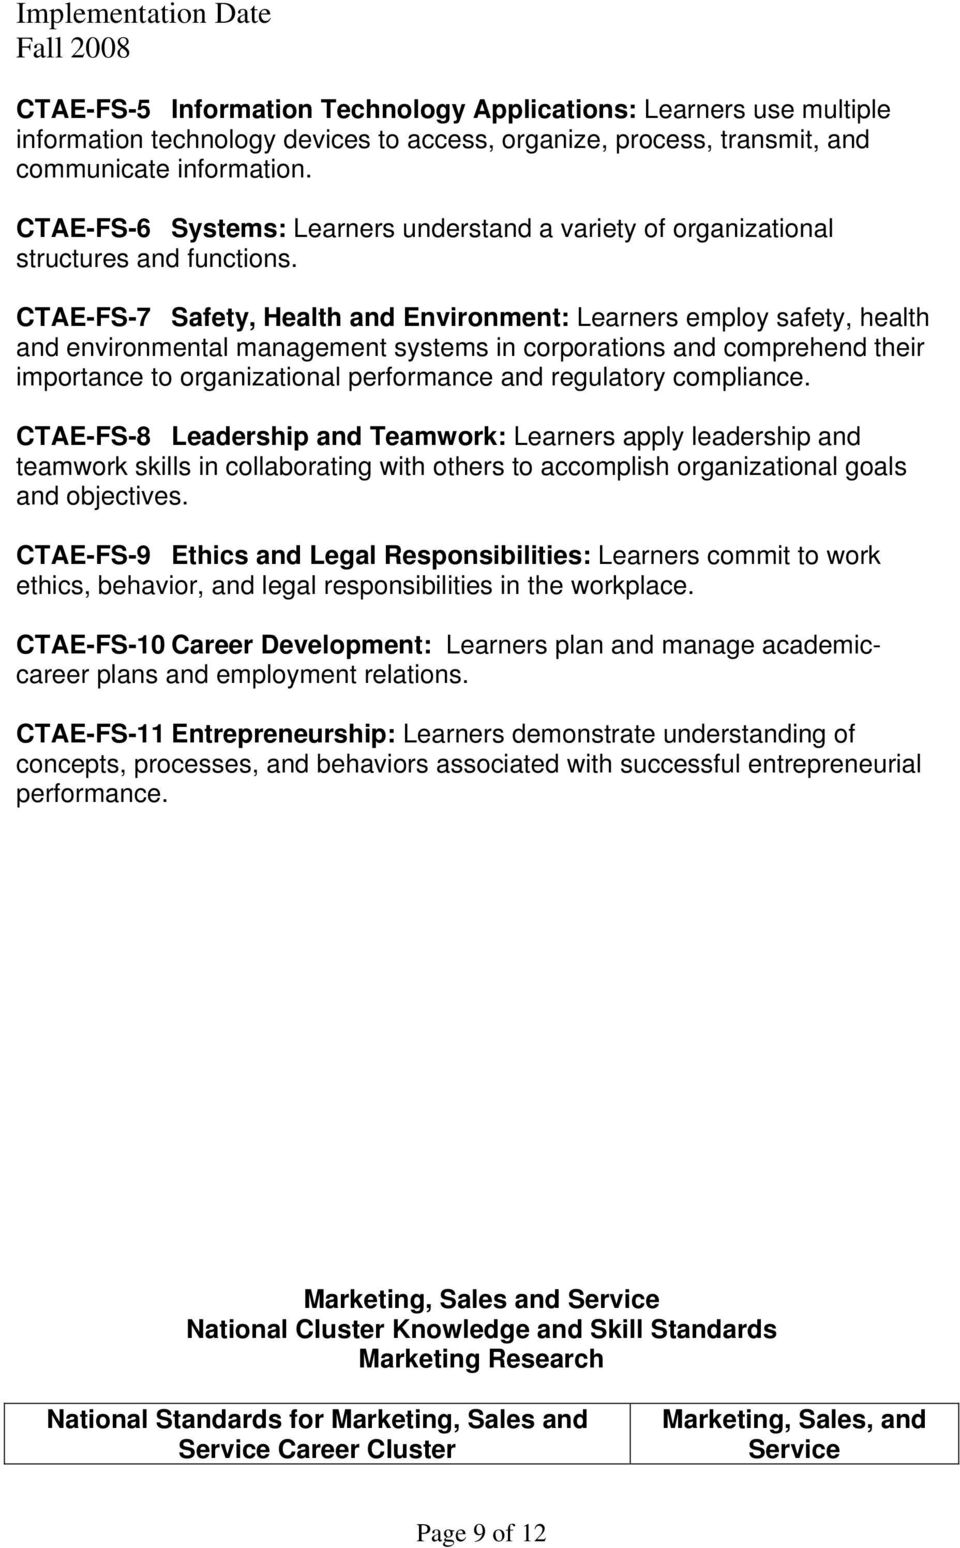 CTAE-FS-7 Safety, Health and Environment: Learners employ safety, health and environmental management systems in corporations and comprehend their importance to organizational performance and